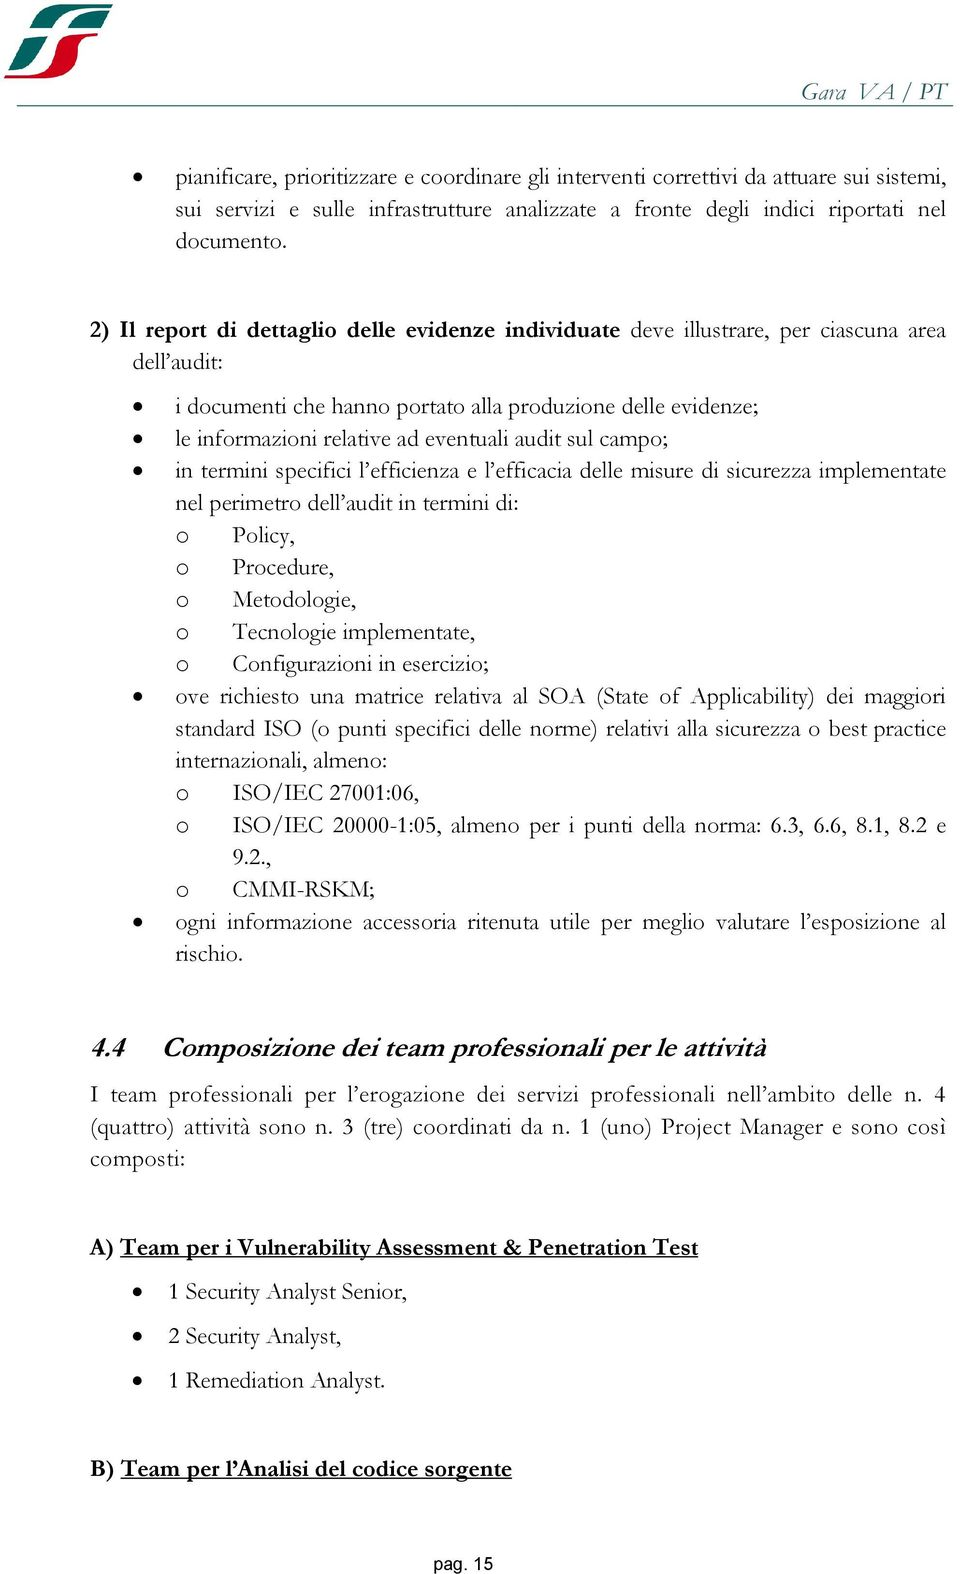 camp; in termini specifici l efficienza e l efficacia delle misure di sicurezza implementate nel perimetr dell audit in termini di: Plicy, Prcedure, Metdlgie, Tecnlgie implementate, Cnfigurazini in